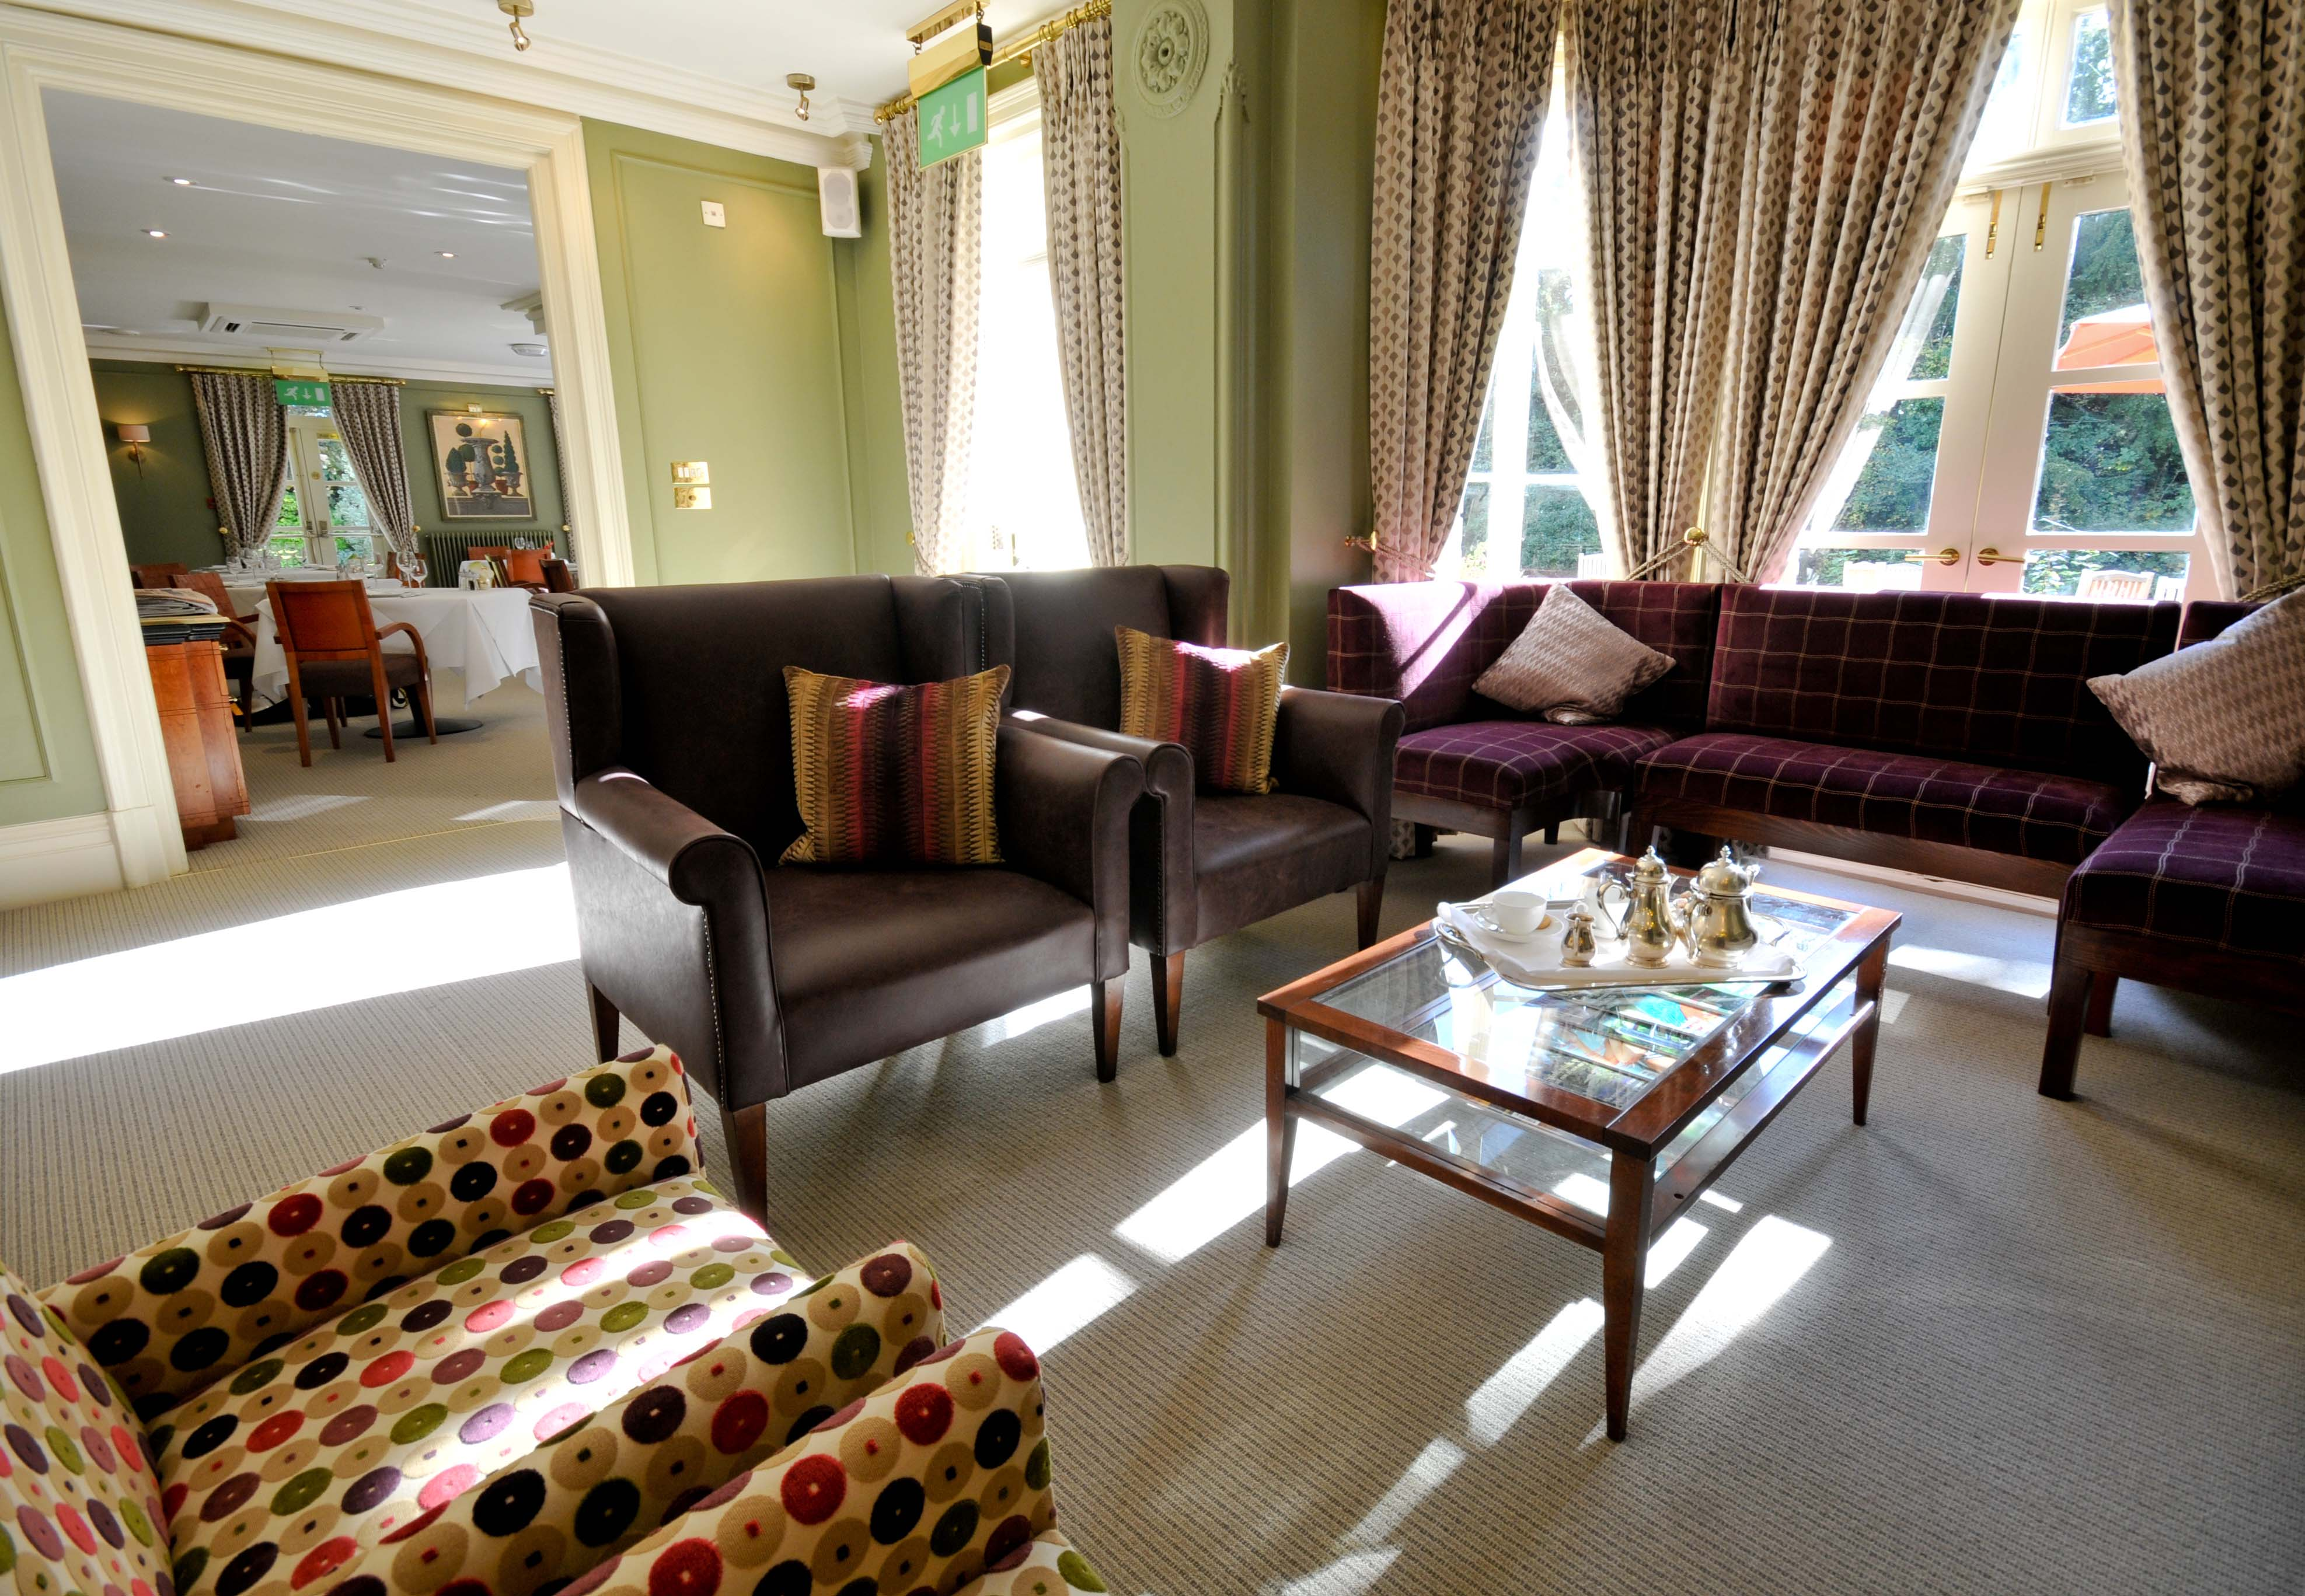 Castle House, Lounge, hotel, inn, stay in herefordshire, relax in hereford